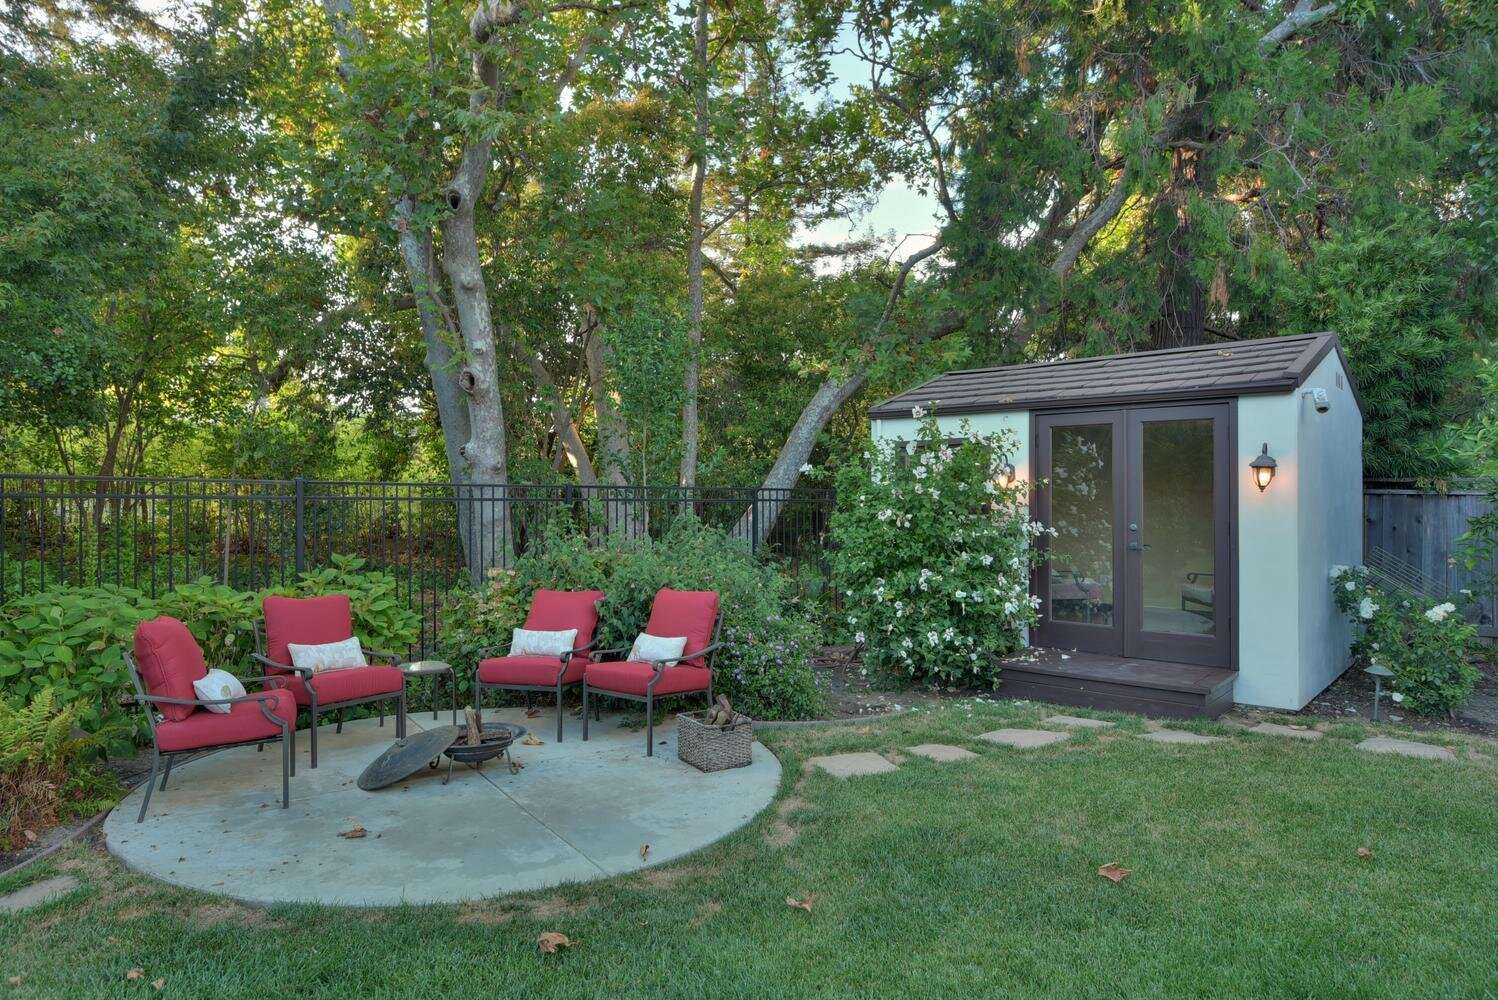 16021 Winterbrook Rd Los Gatos-large-063-045-Fire Pit Area and Shed-1499x1000-72dpi.jpg